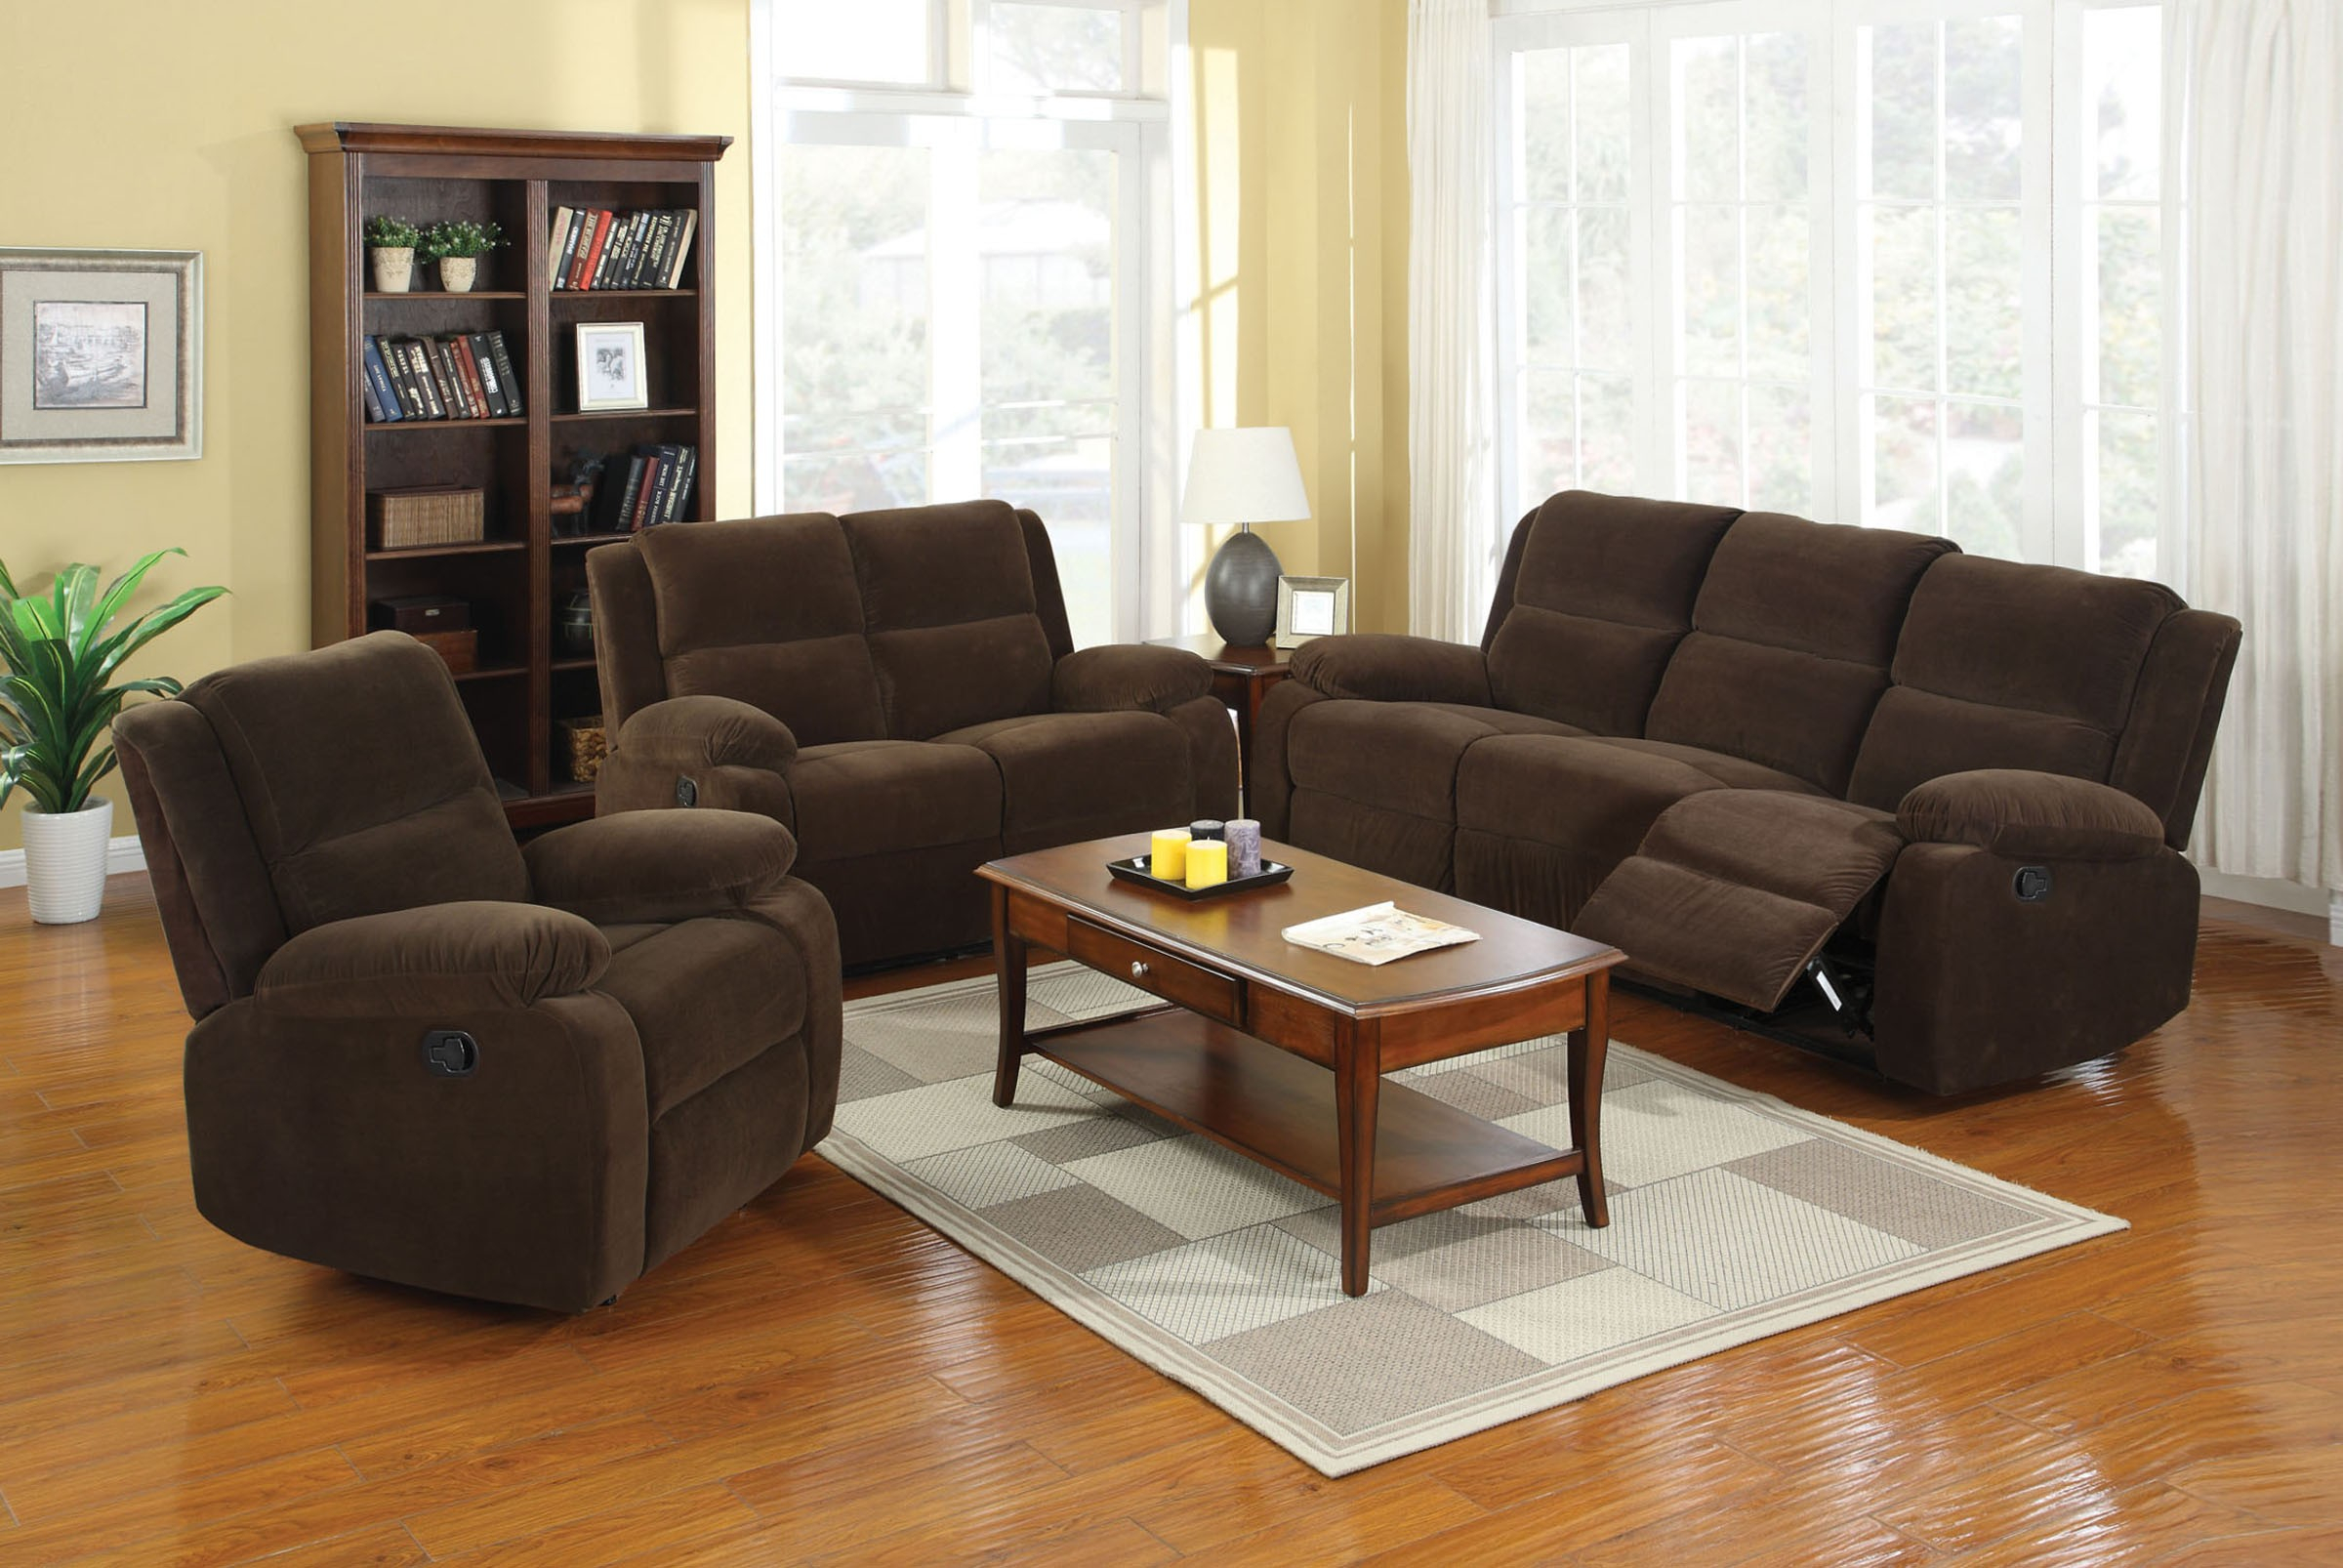 Furniture Of America Haven Living Room Set In Dark Brown | Local In Haven Sofa Chairs (Image 5 of 25)